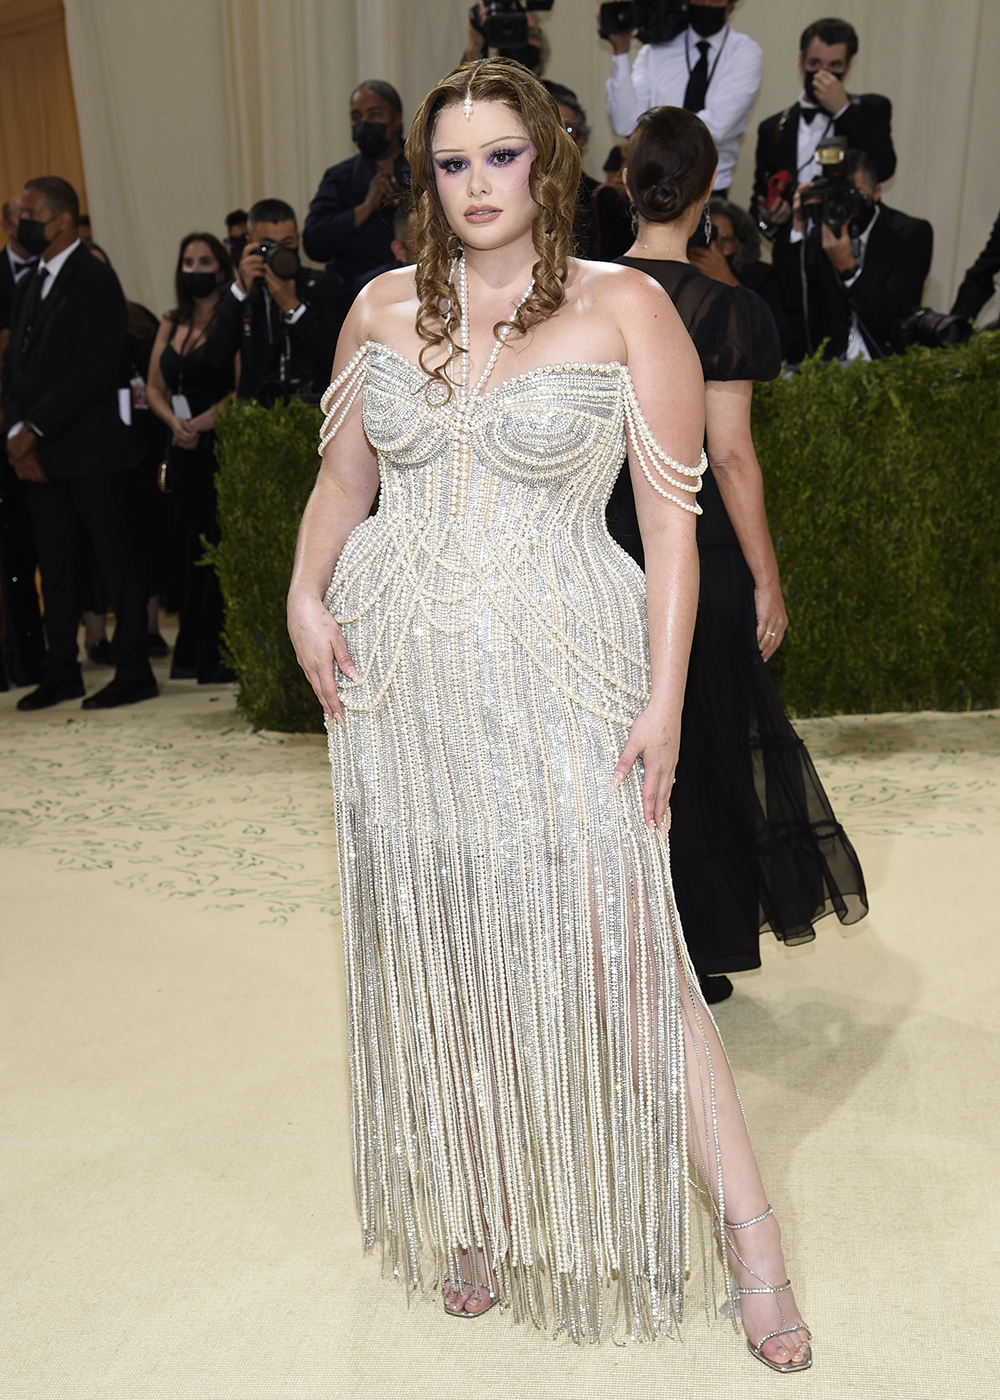 """Barbie Ferreira attends The Metropolitan Museum of Art's Costume Institute benefit gala celebrating the opening of the """"In America: A Lexicon of Fashion"""" exhibition on Monday, Sept. 13, 2021, in New York. (Photo by Evan Agostini/Invision/AP)"""